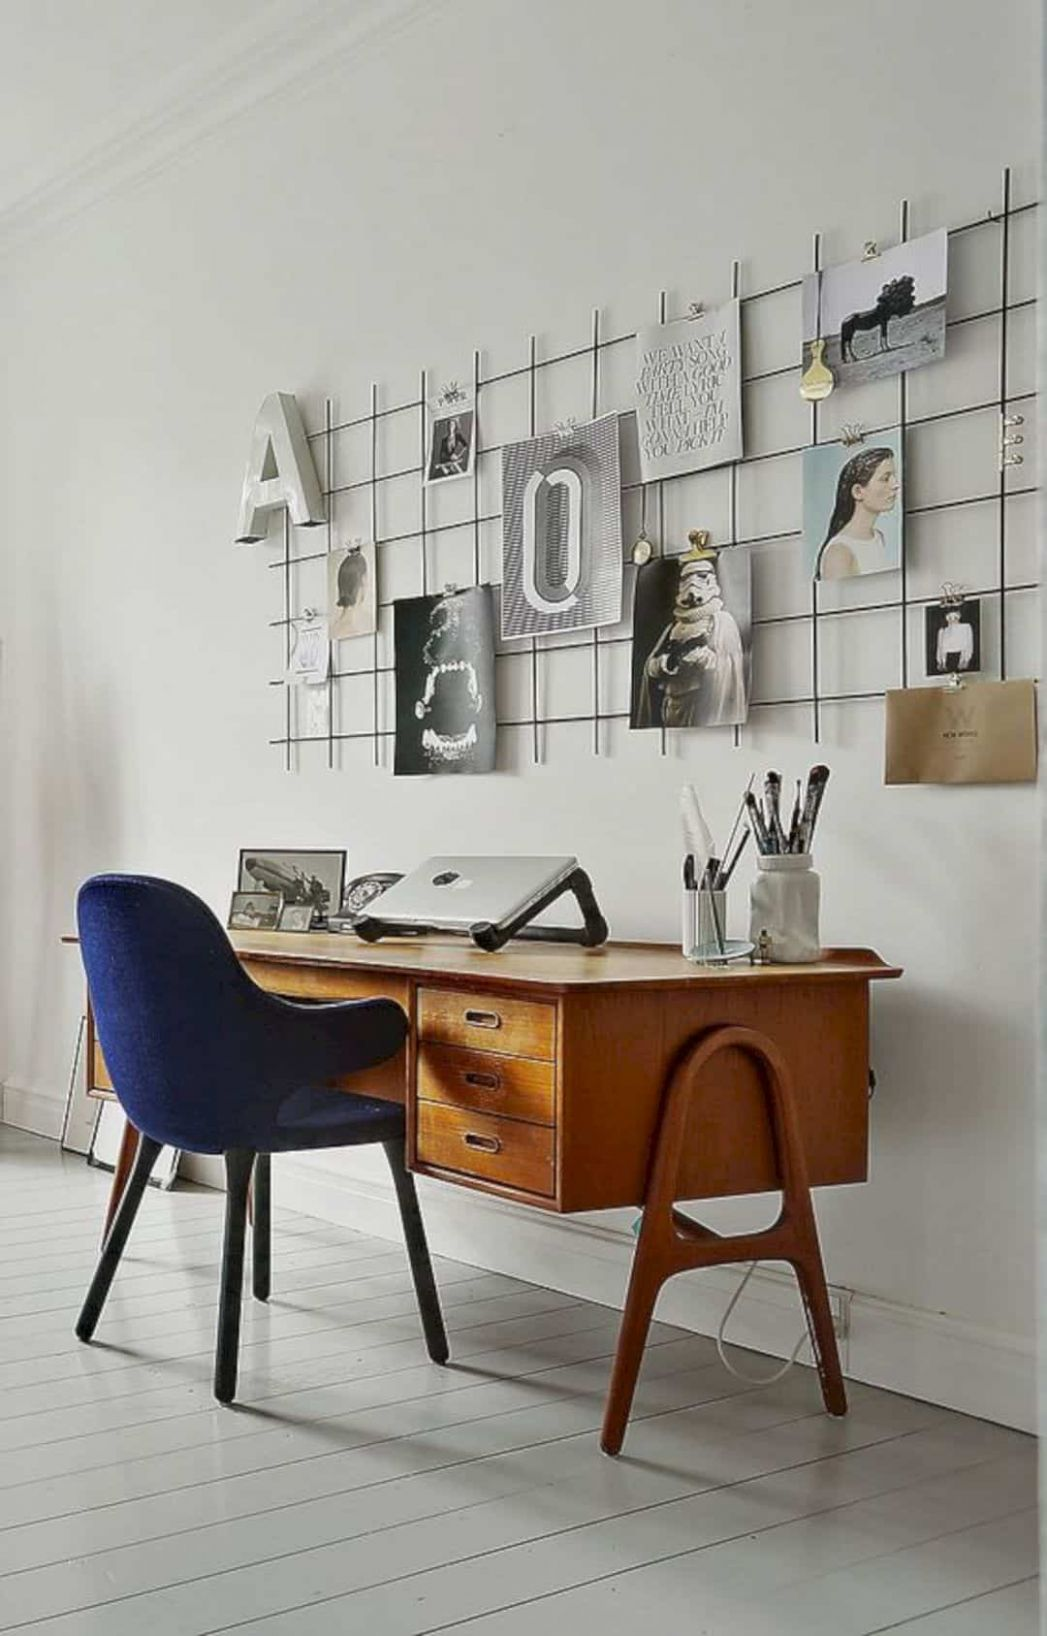 9 Office Wall Decoration Ideas - wall decoration ideas in office